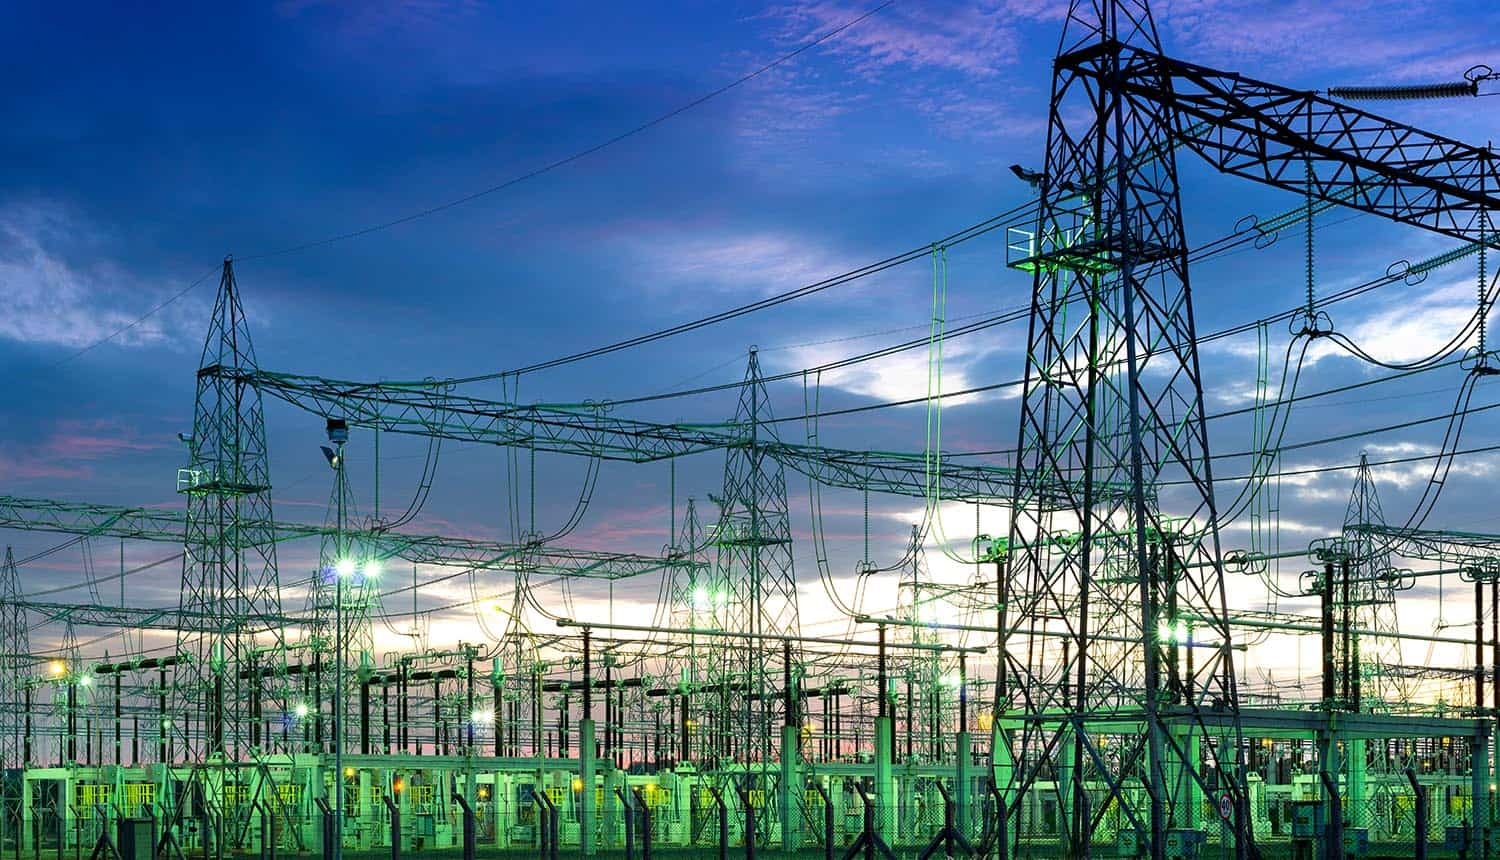 Illuminated electric substation plant at night showing ICS cybersecurity